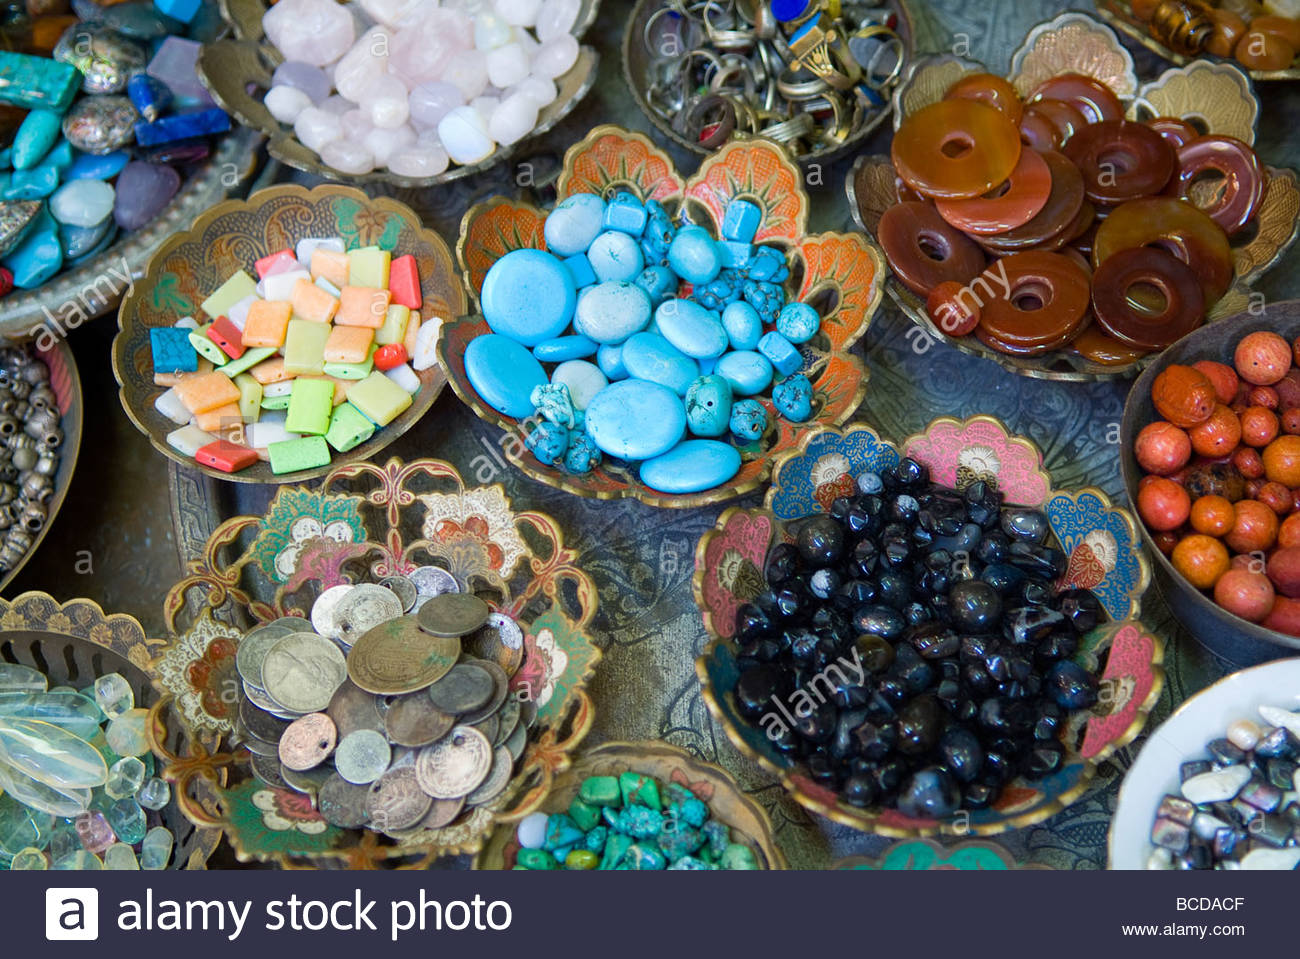 Old City, Market scenes, polished stones for sale. - Stock Image